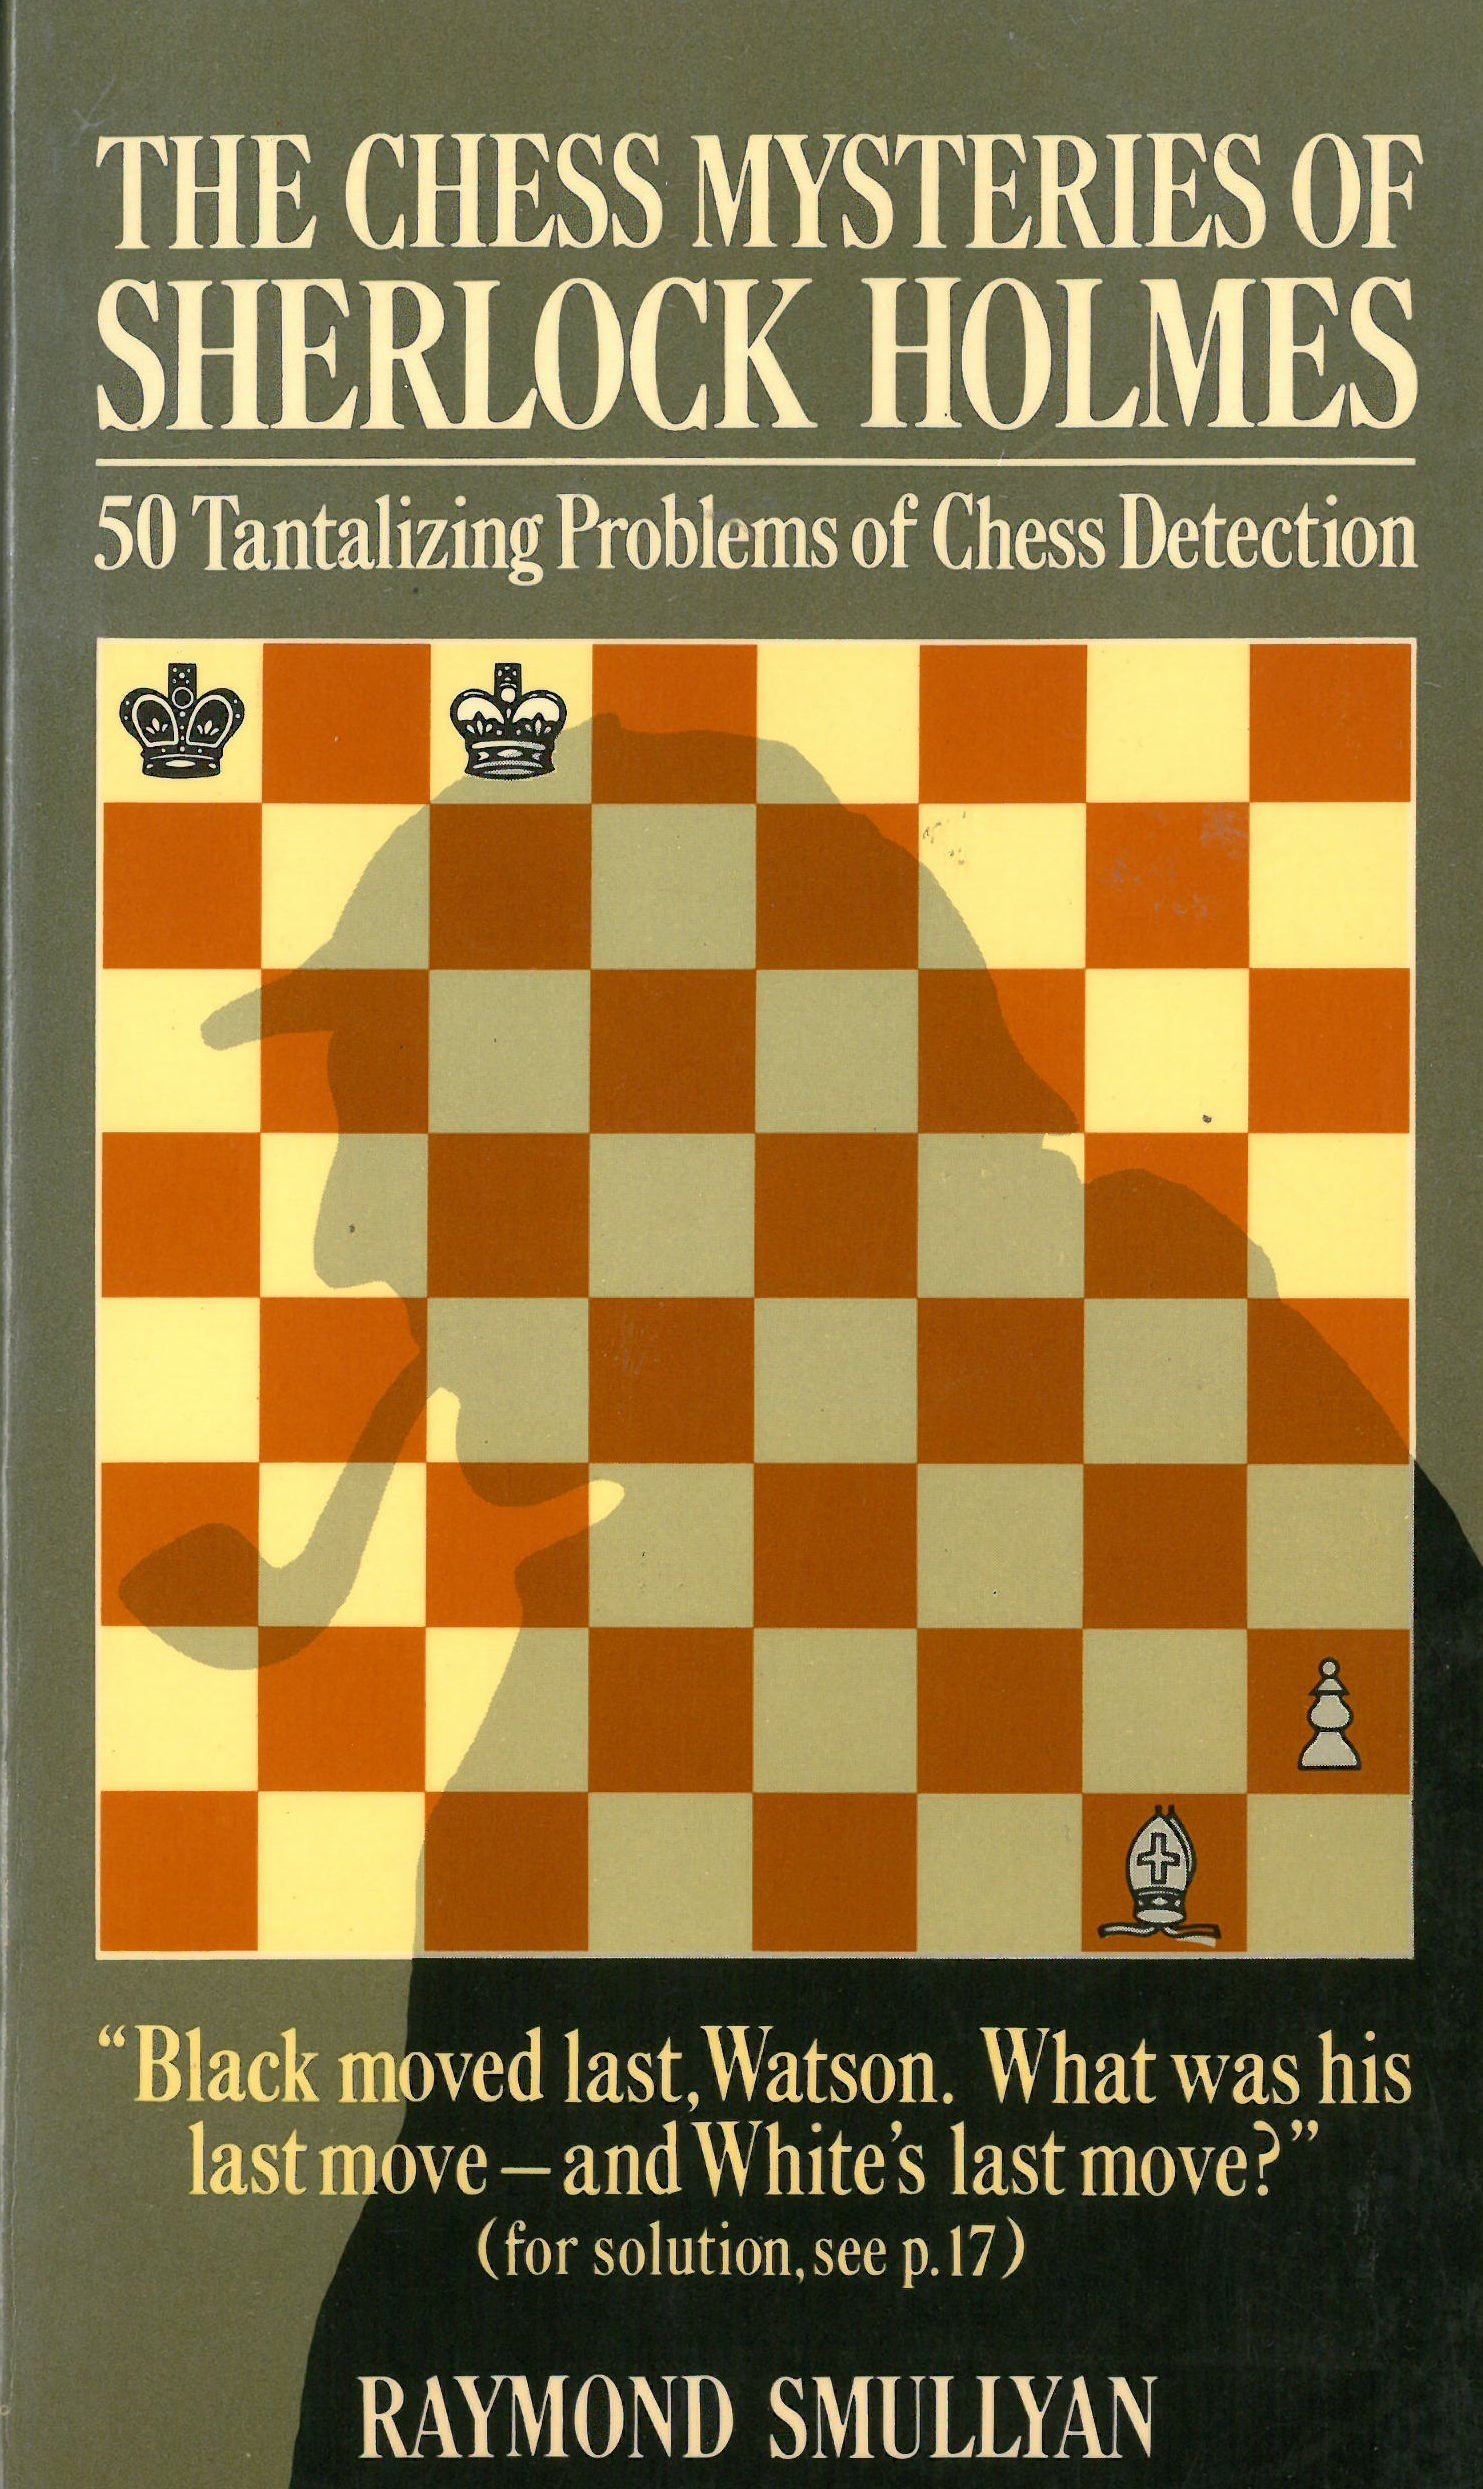 The Chess Mysteries of Sherlock Holmes: Amazon.es: Smullyan, Raymond M.: Libros en idiomas extranjeros